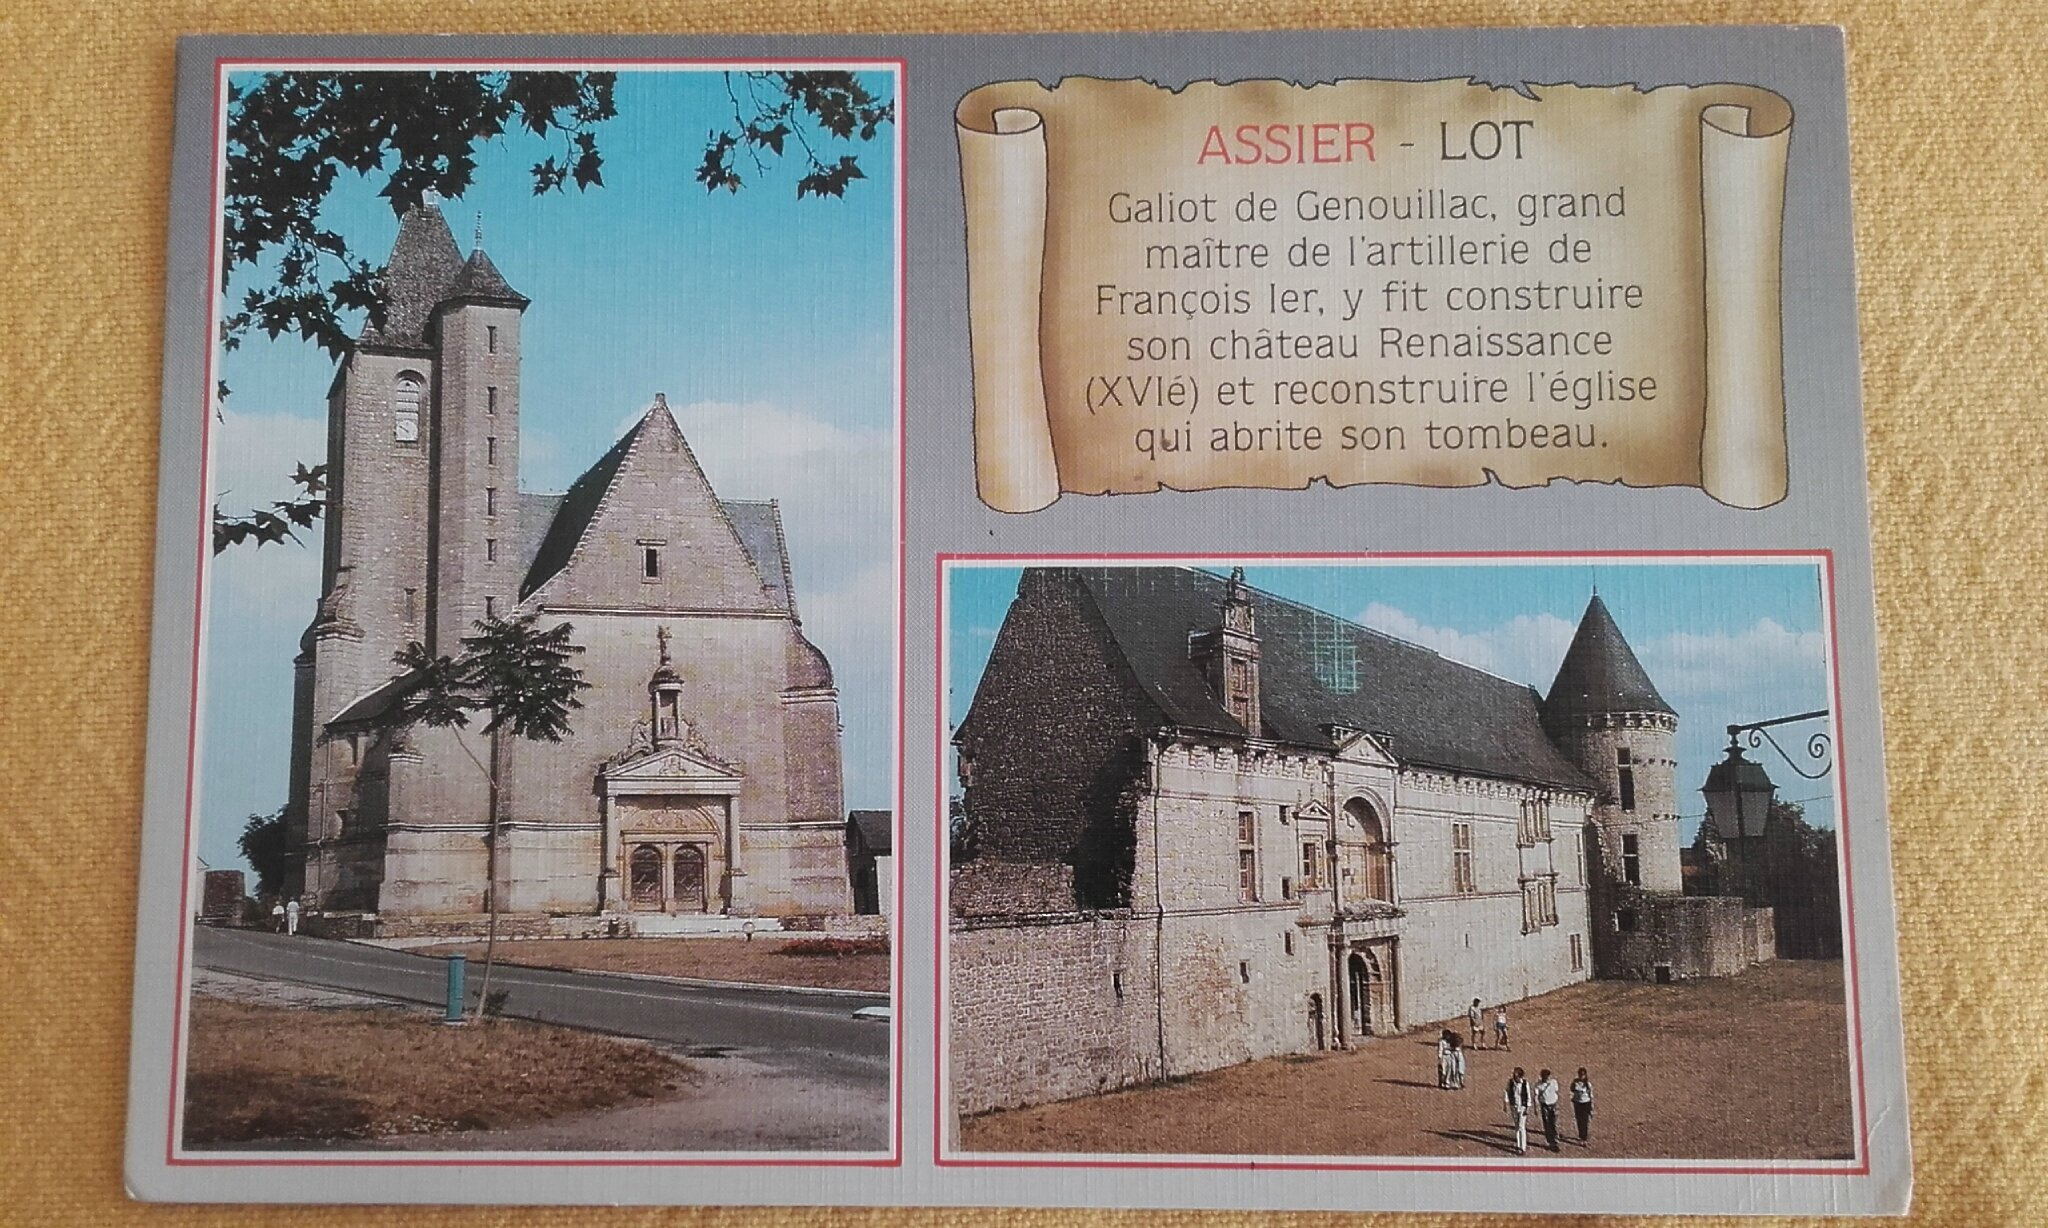 Assier datée 1992